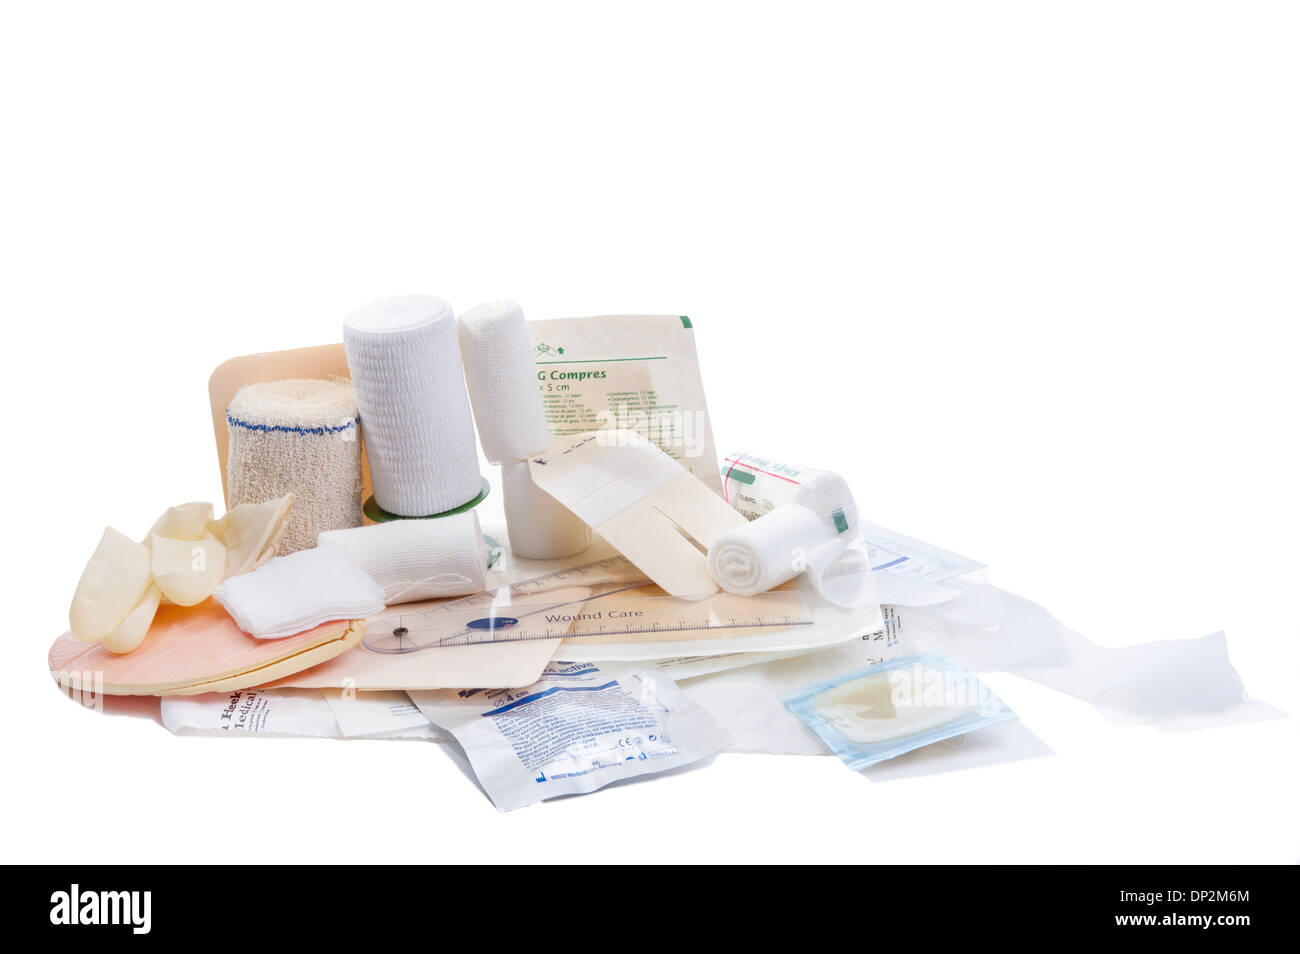 Bandages and dressings - Stock Image